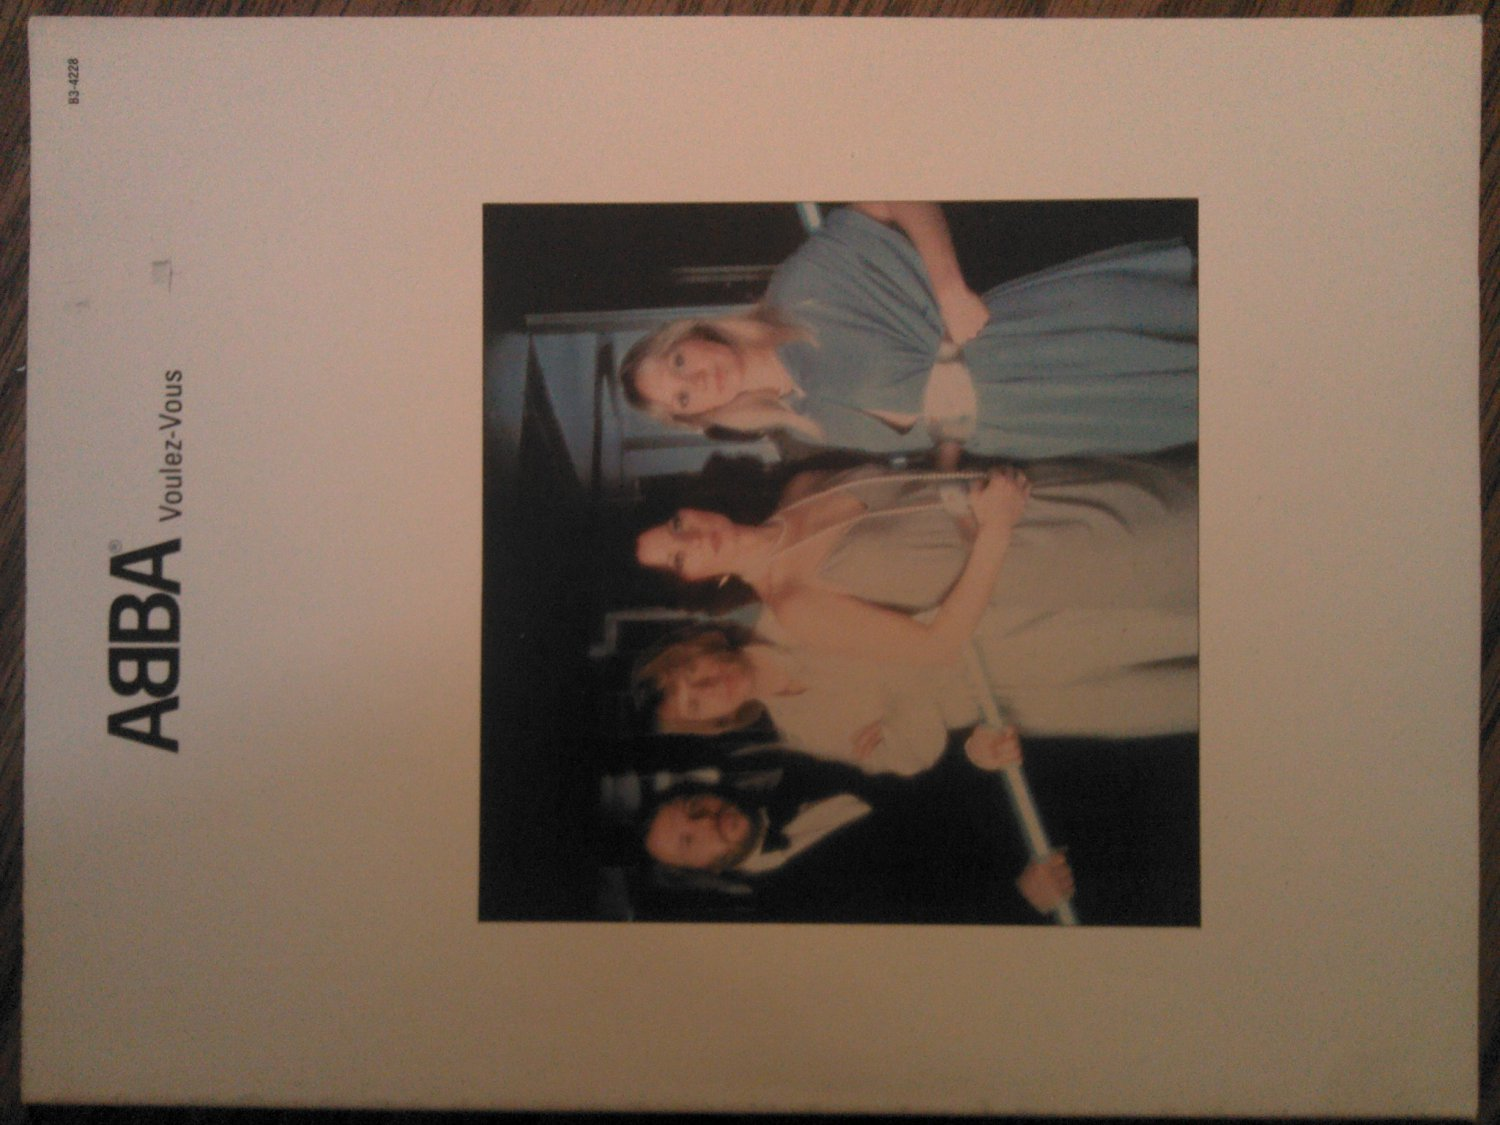 ABBA SONGBOOK Voulez-Vous chiquitita song book VINTAGE